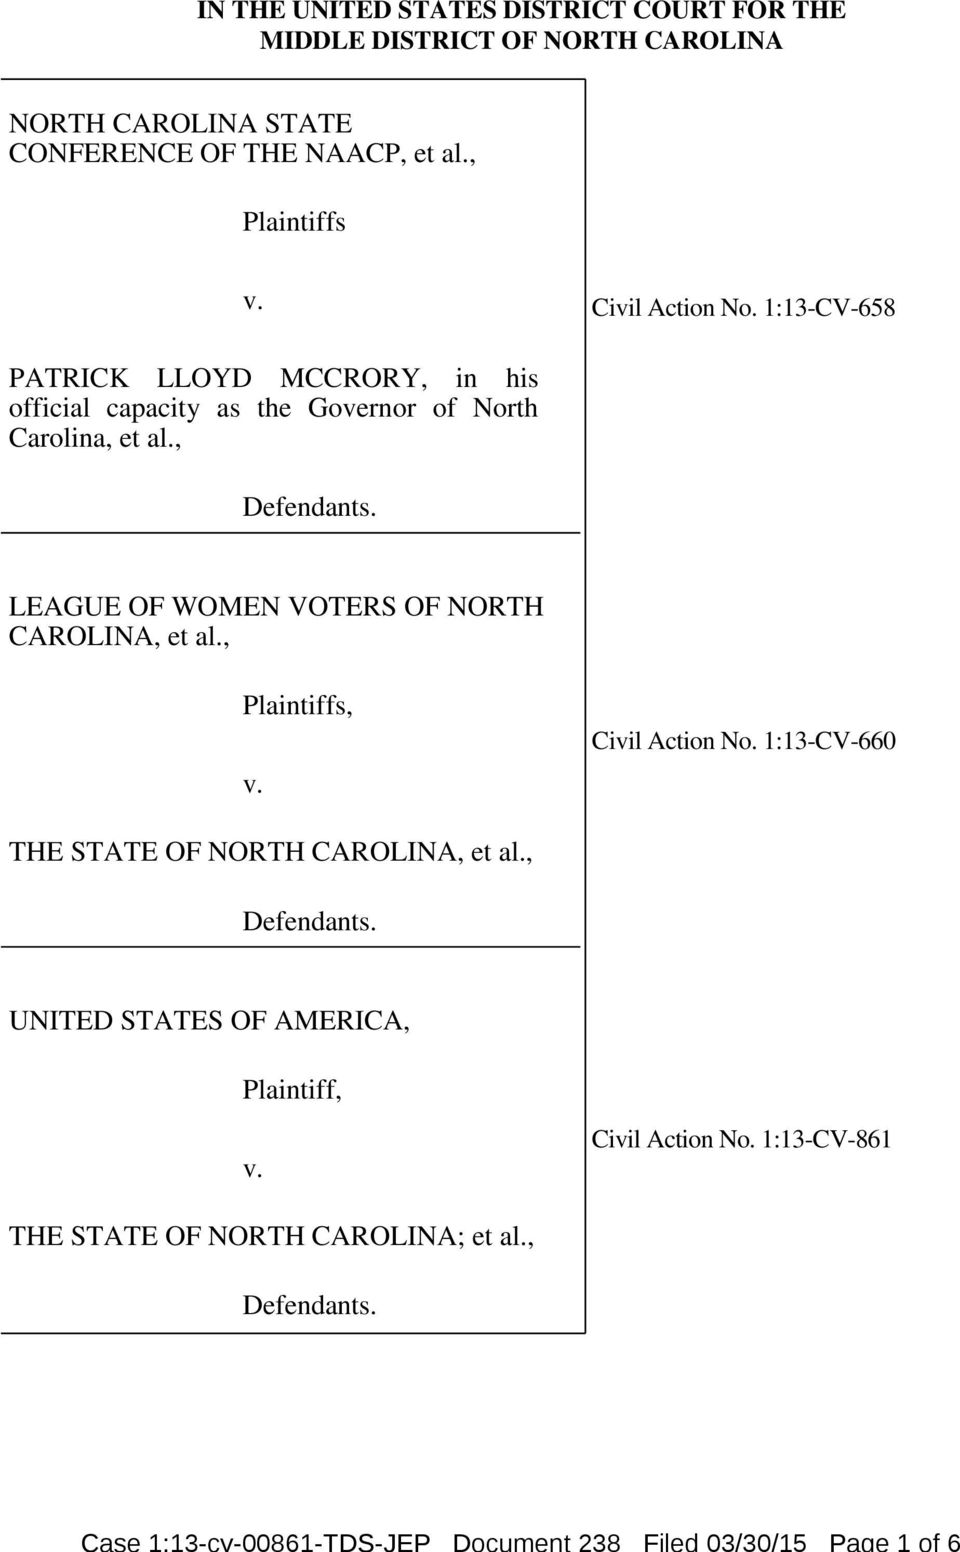 1:13-CV-658 PATRICK LLOYD MCCRORY, in his official capacity as the Governor of North Carolina, et al., Defendants.